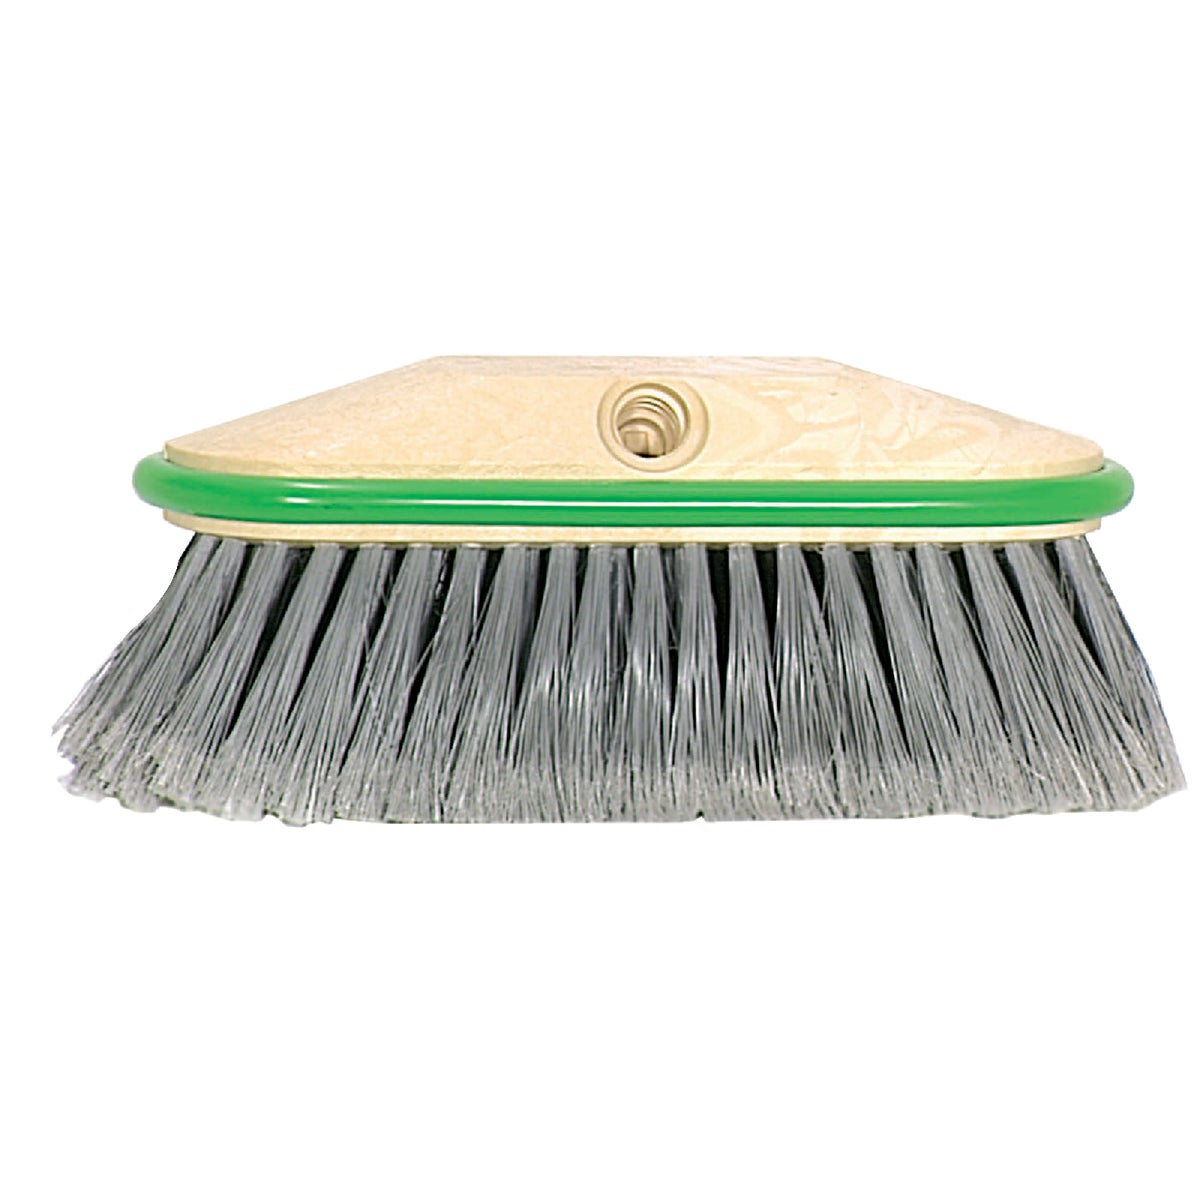 "10"" WINDOW BRUSH - 11713 by D Q B Ind"